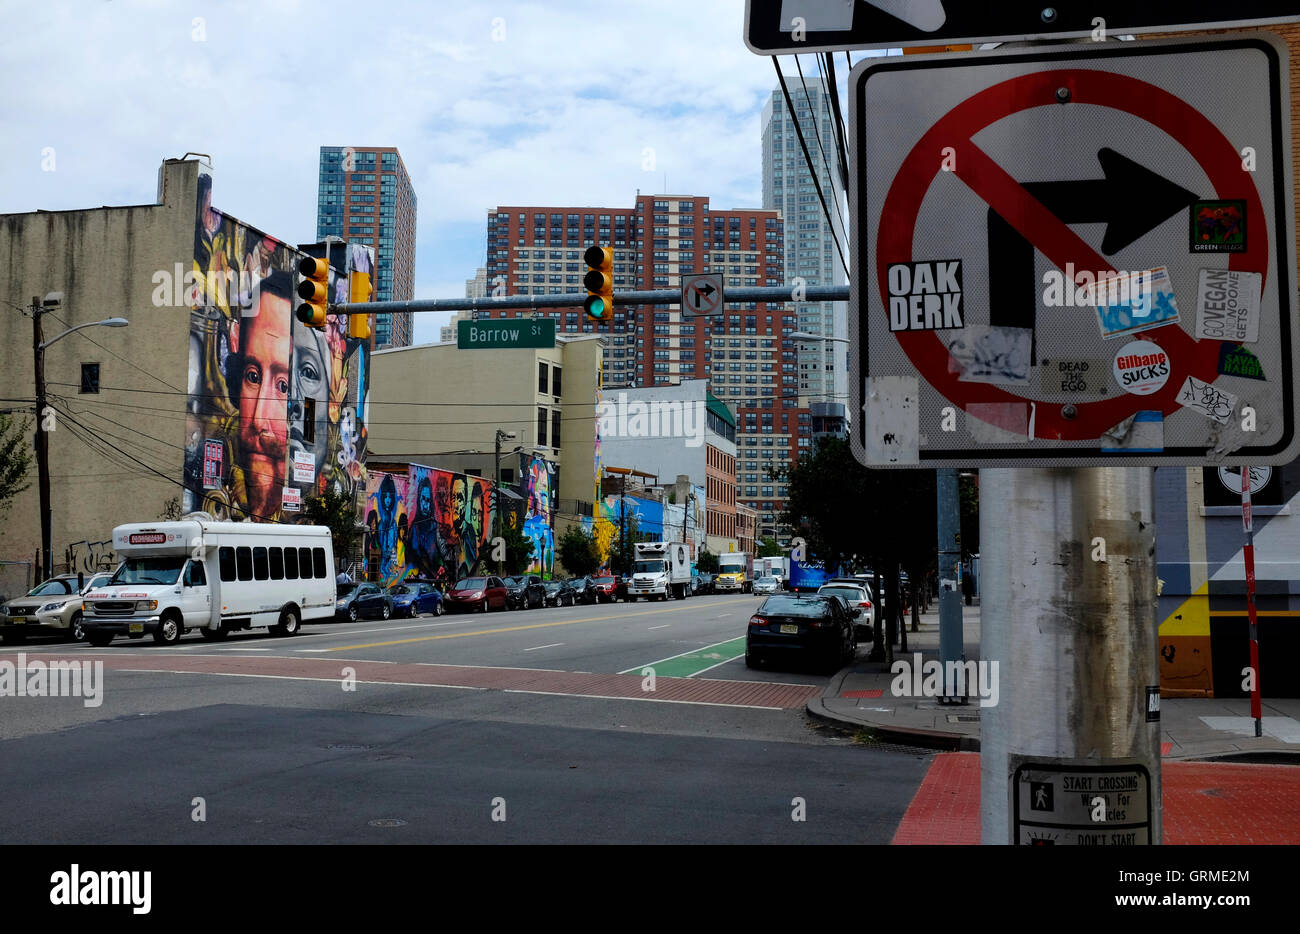 Graffiti and murals on traffic signs and building facade along Christopher Columbus Drive in Jersey City,New Jersey,USA - Stock Image